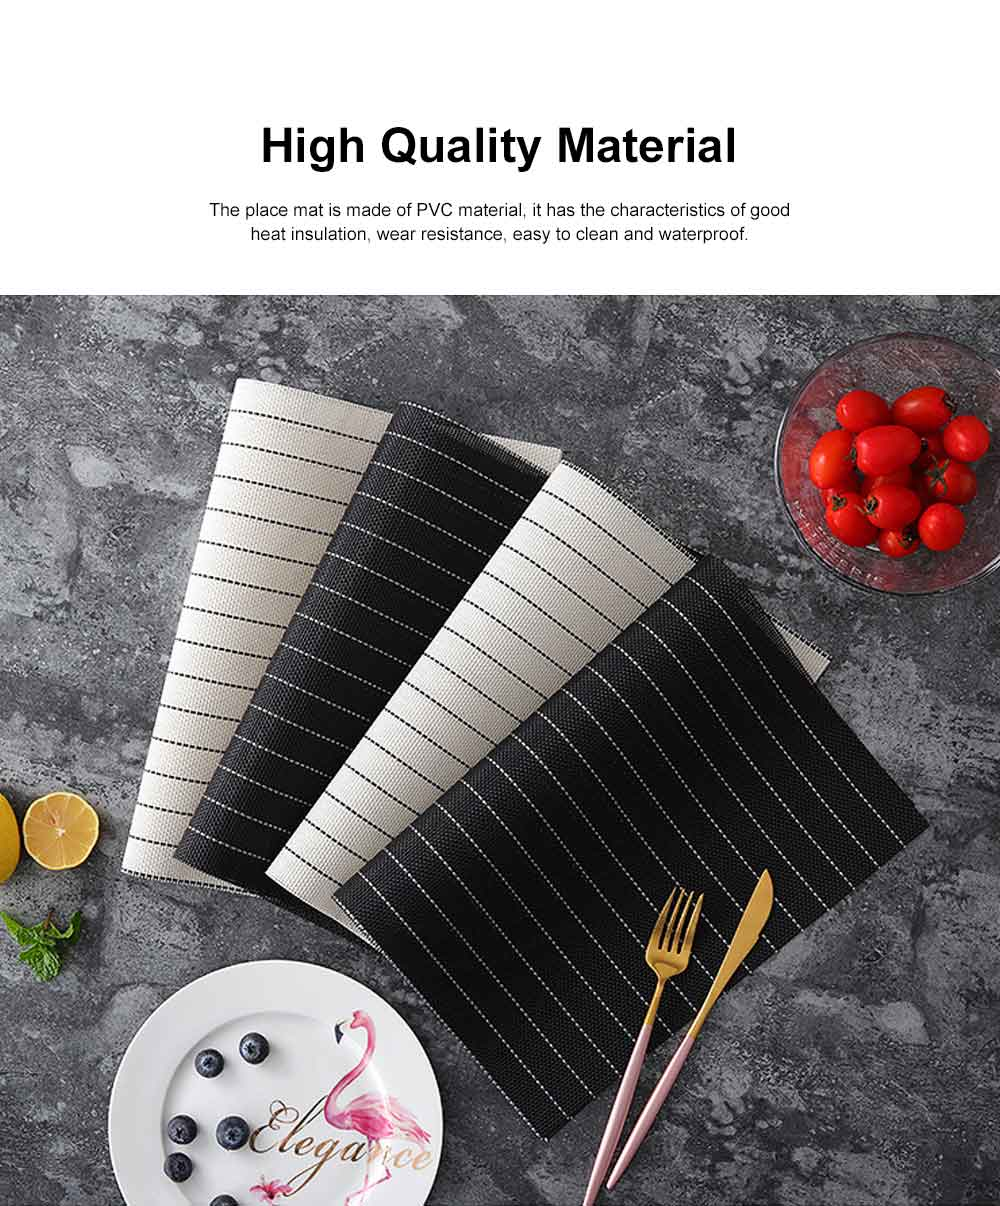 Place Mat PVC Waterproof Thicken Heat Resistant Modern Simple Table Mat European Style Heat Insulation Mat for Household 1